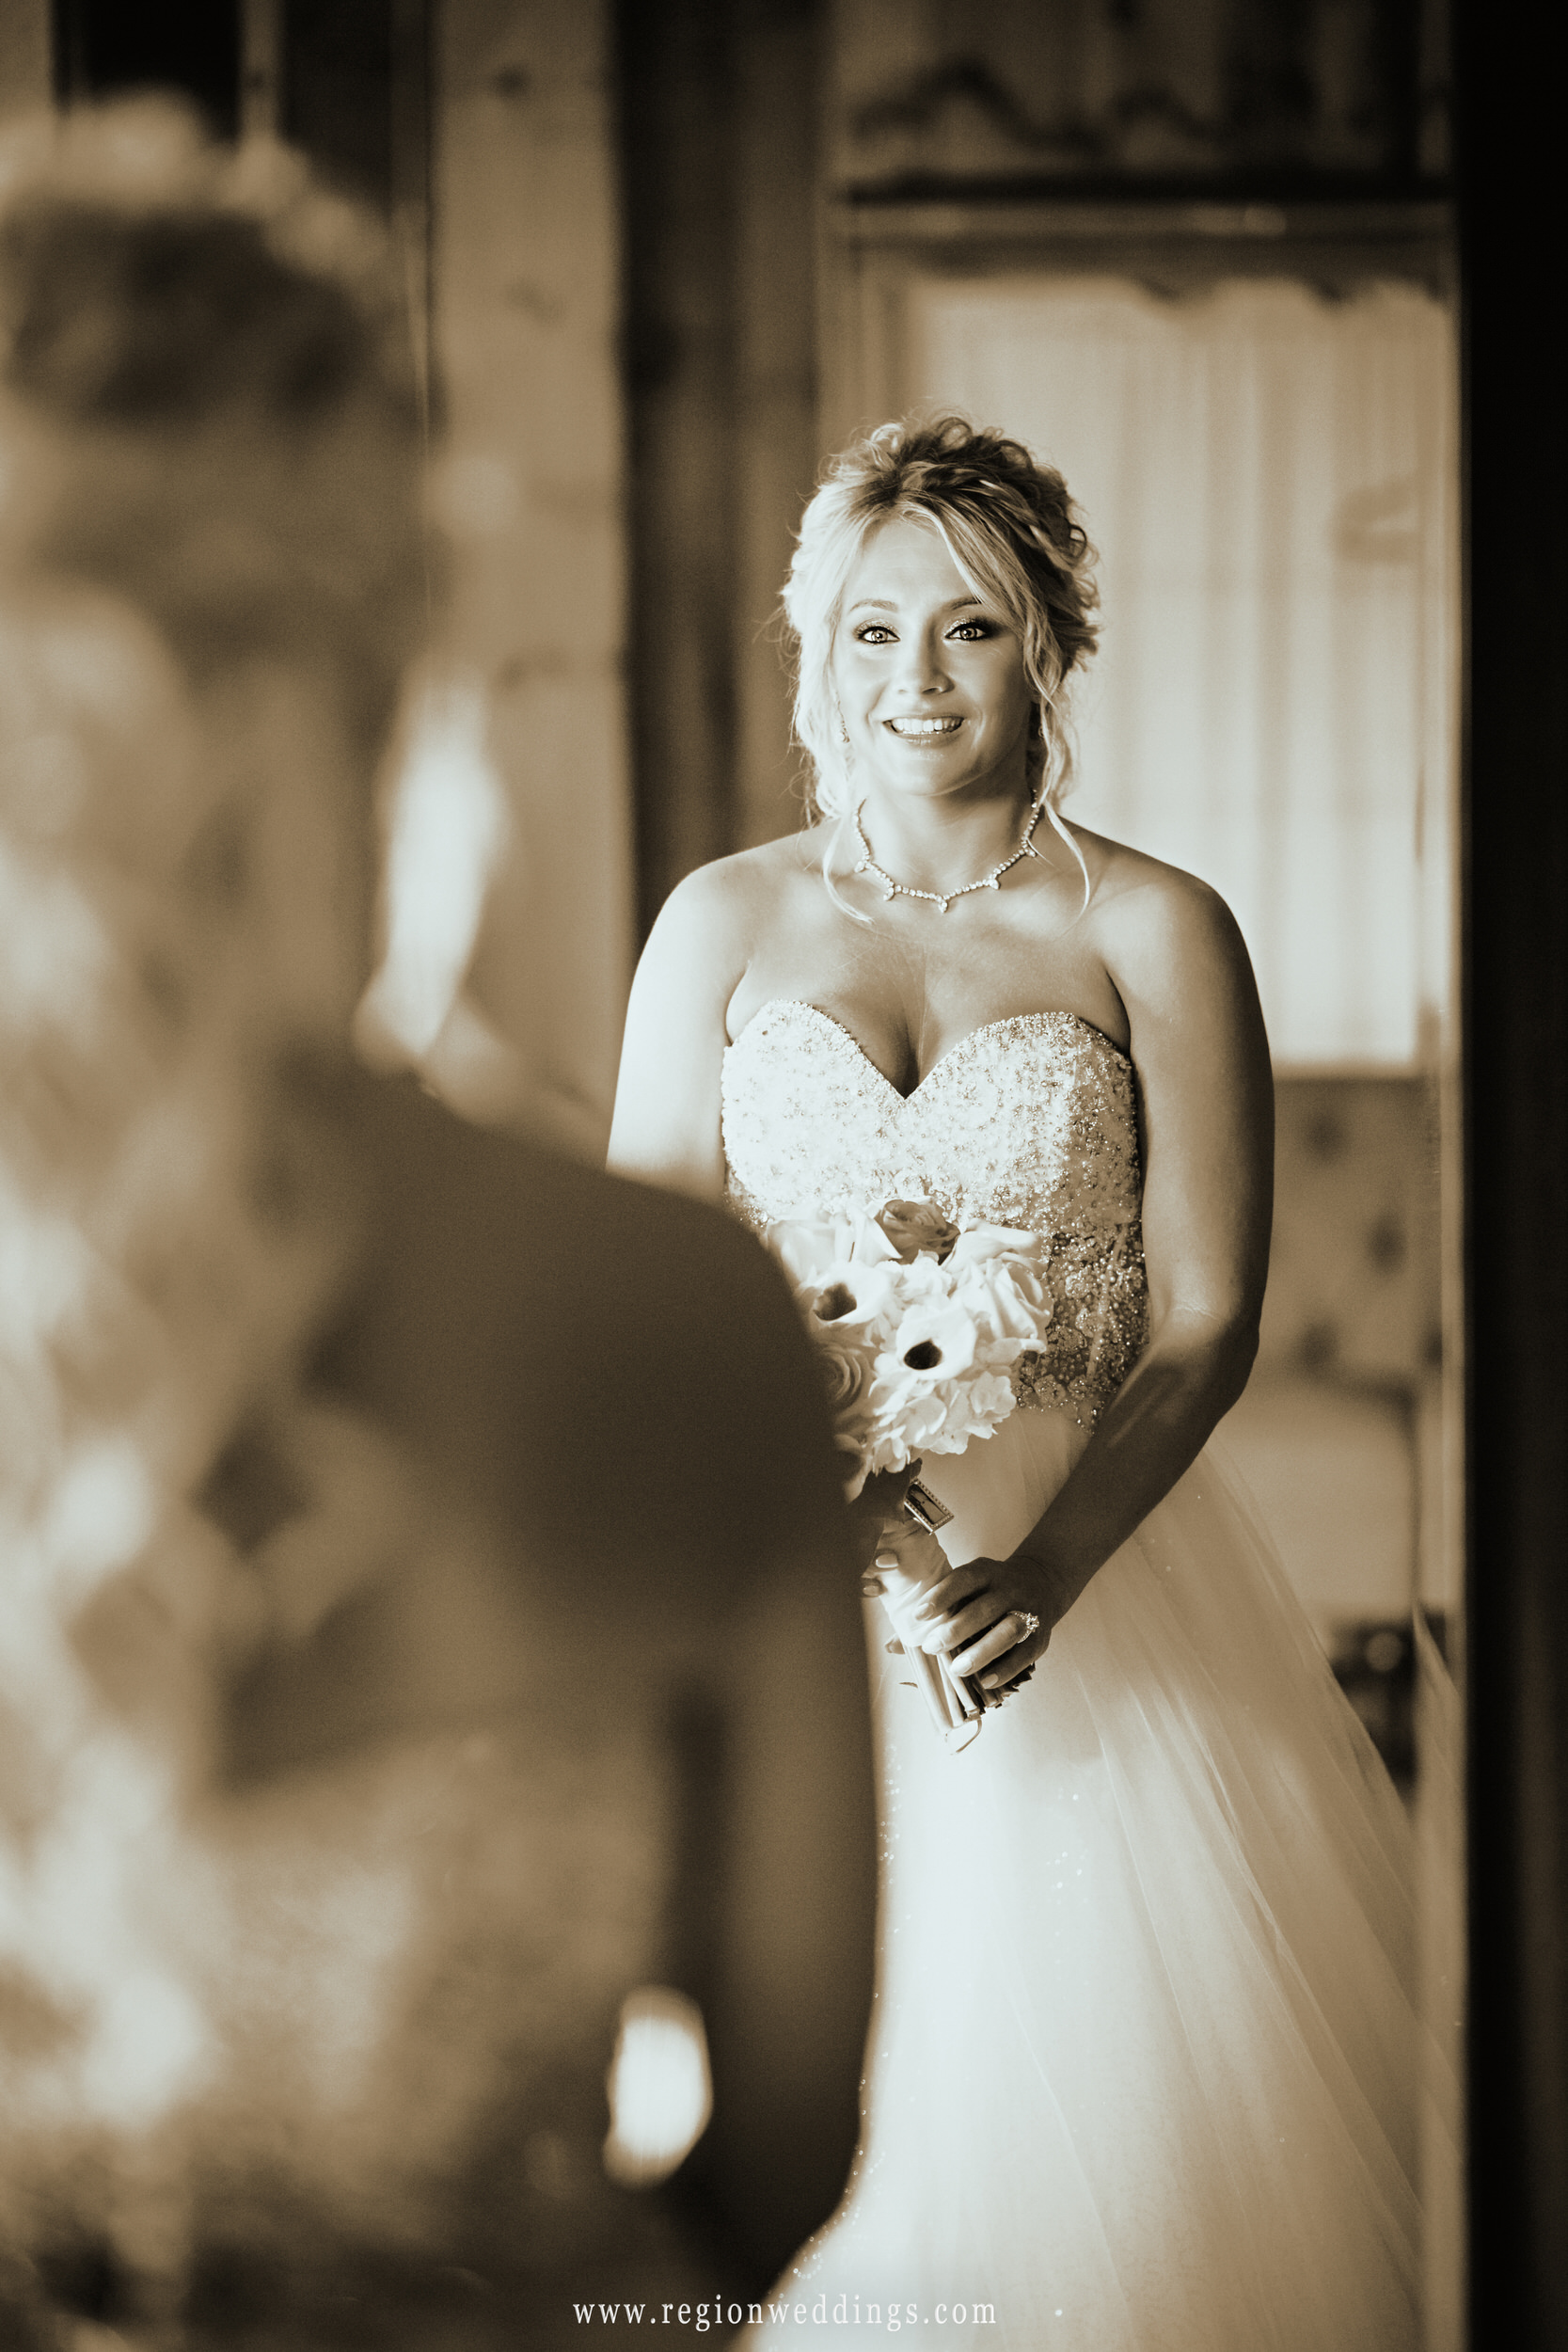 Bridal mirror shot.